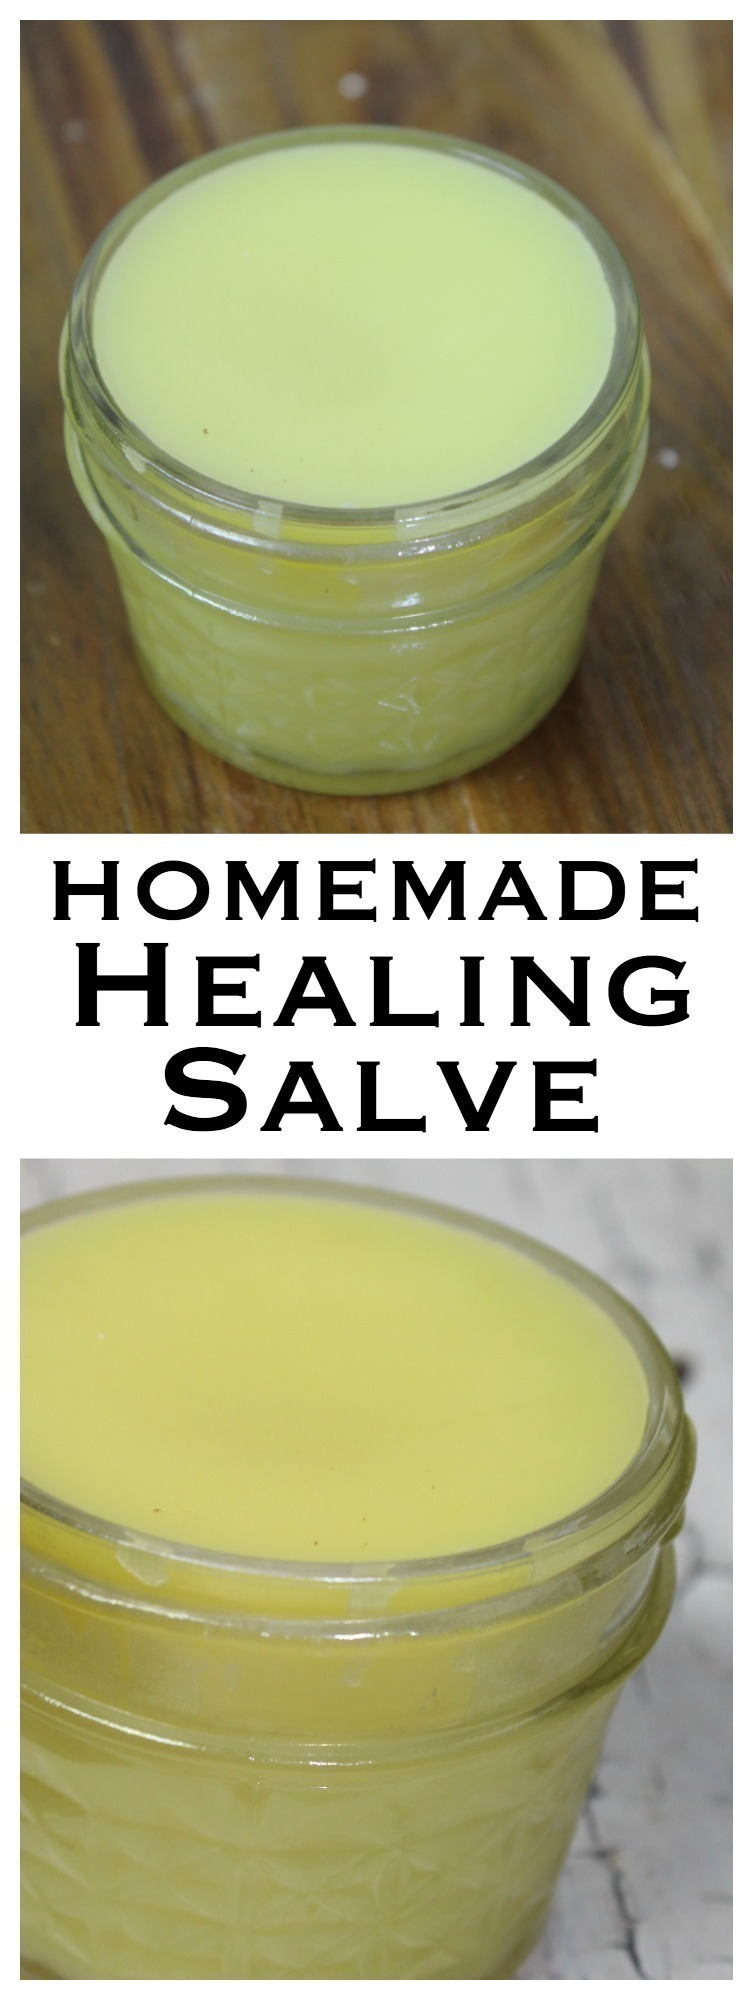 This healing salve requires a few simple ingredients & is perfect for cuts, scrapes, burns, and times when your skin needs an extra little help.